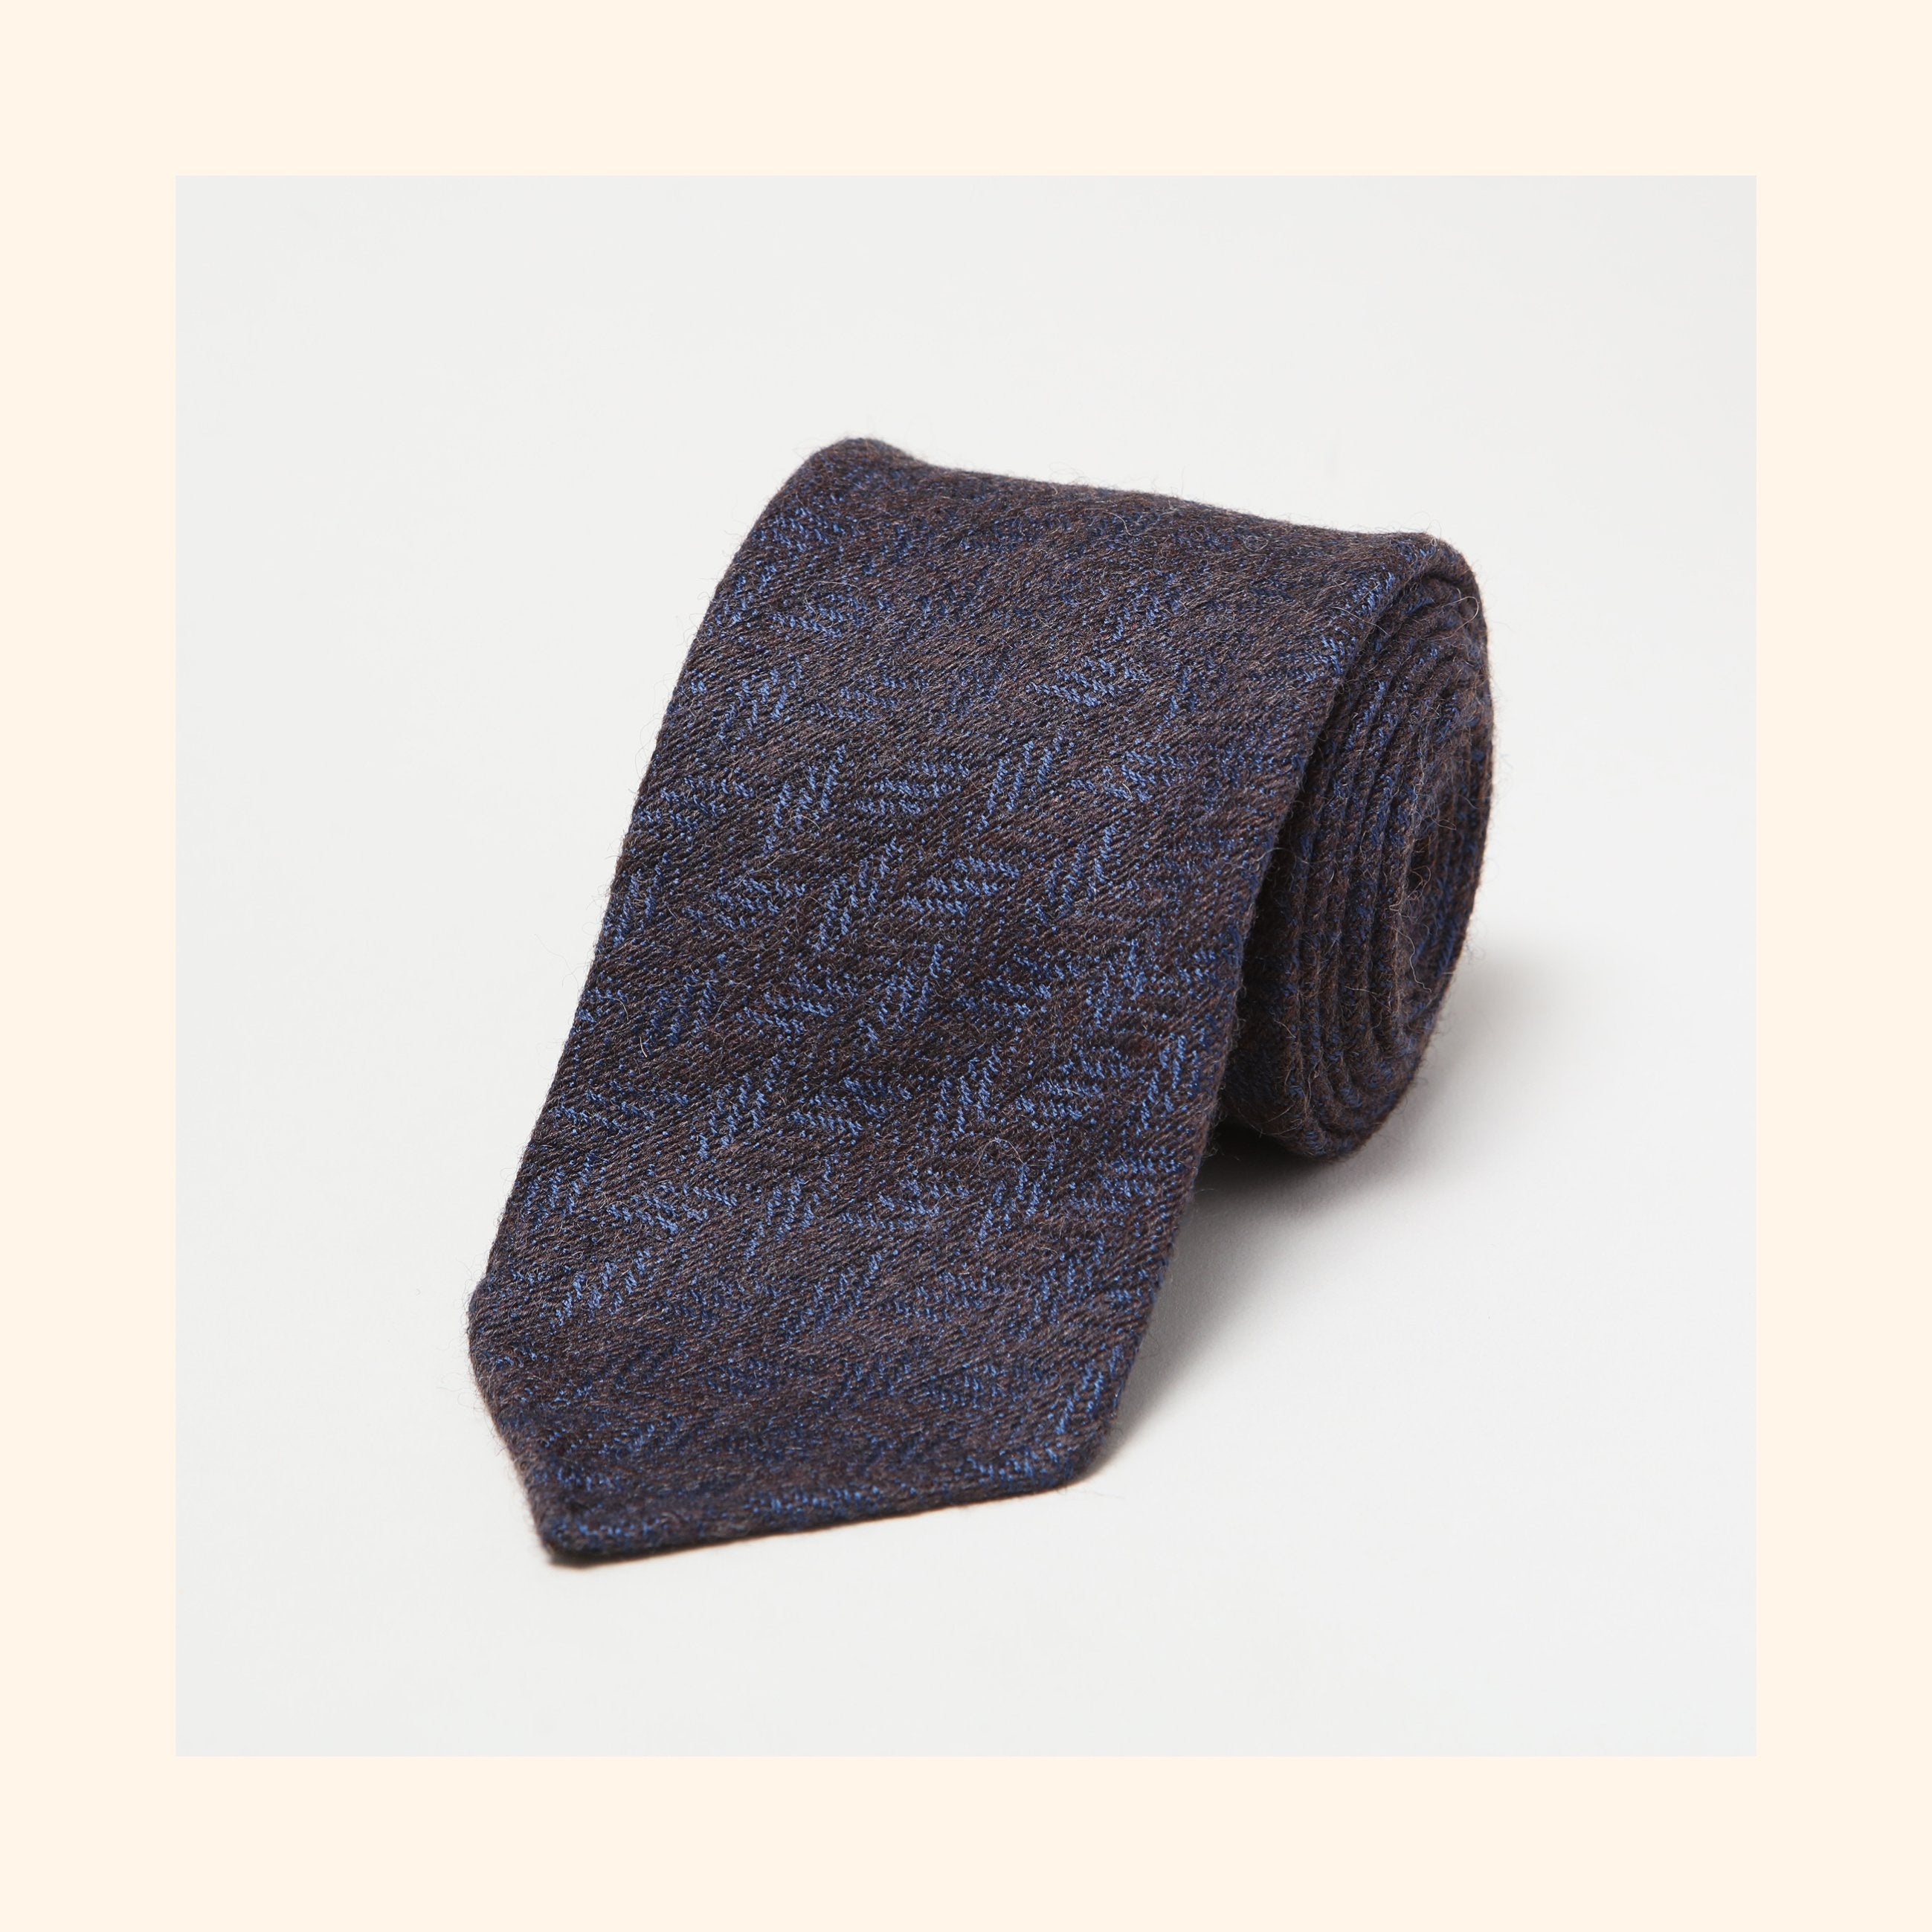 № 227 - Limited Edition Dashing Tweeds 'British Wool' Rolled Tip Wool Tie